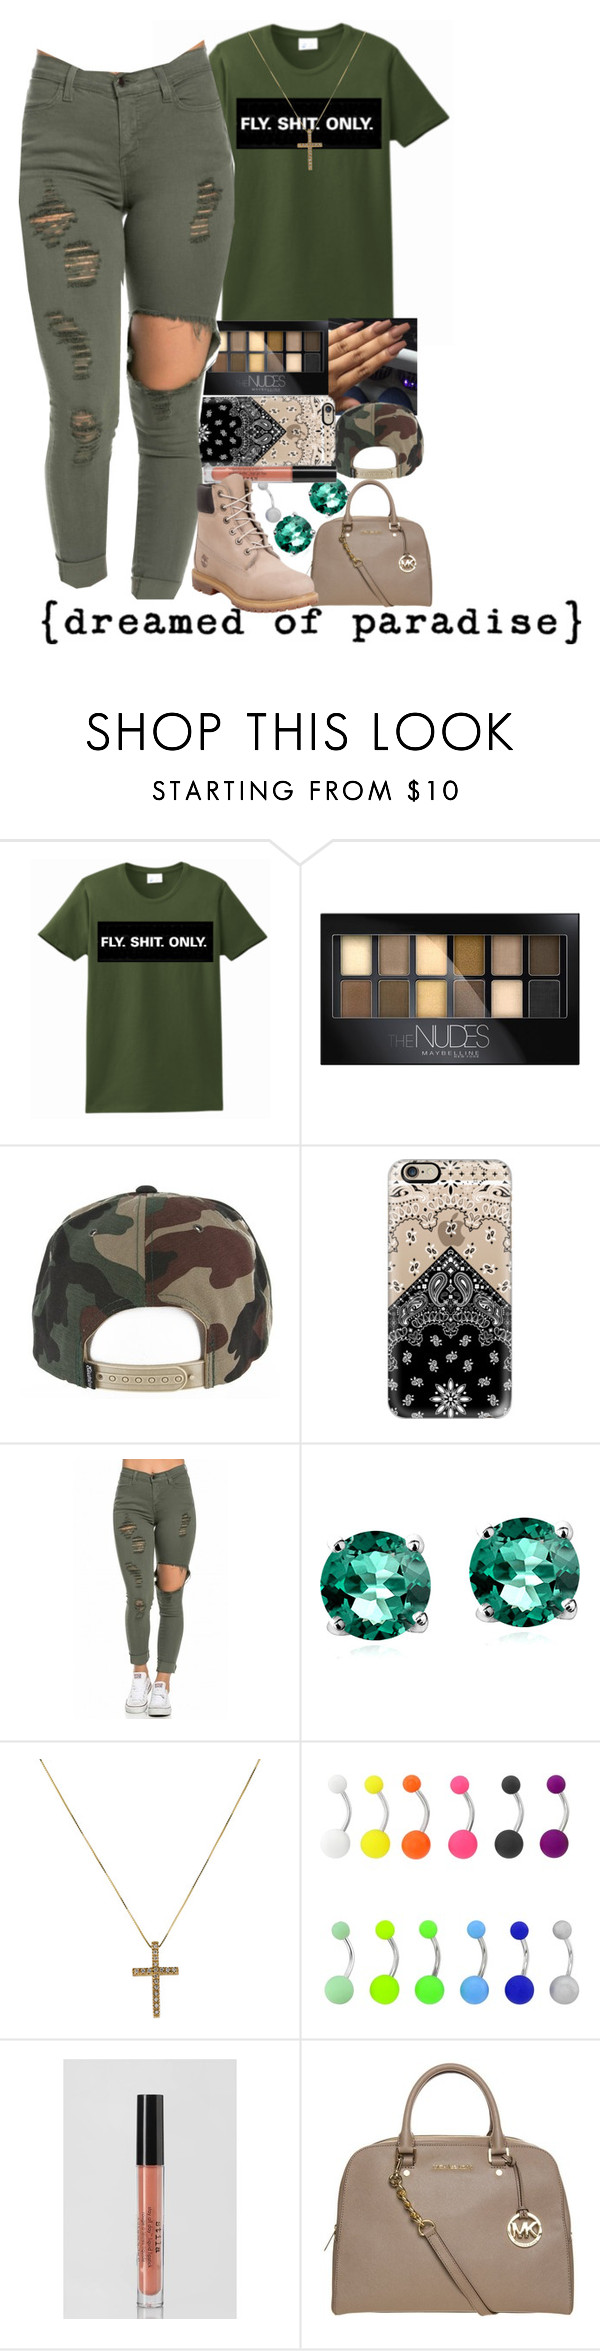 """its going down in the dms"" by wma0411 ❤ liked on Polyvore featuring Maybelline, Casetify, Glitzy Rocks, Stila, MICHAEL Michael Kors, Timberland, women's clothing, women, female and woman"